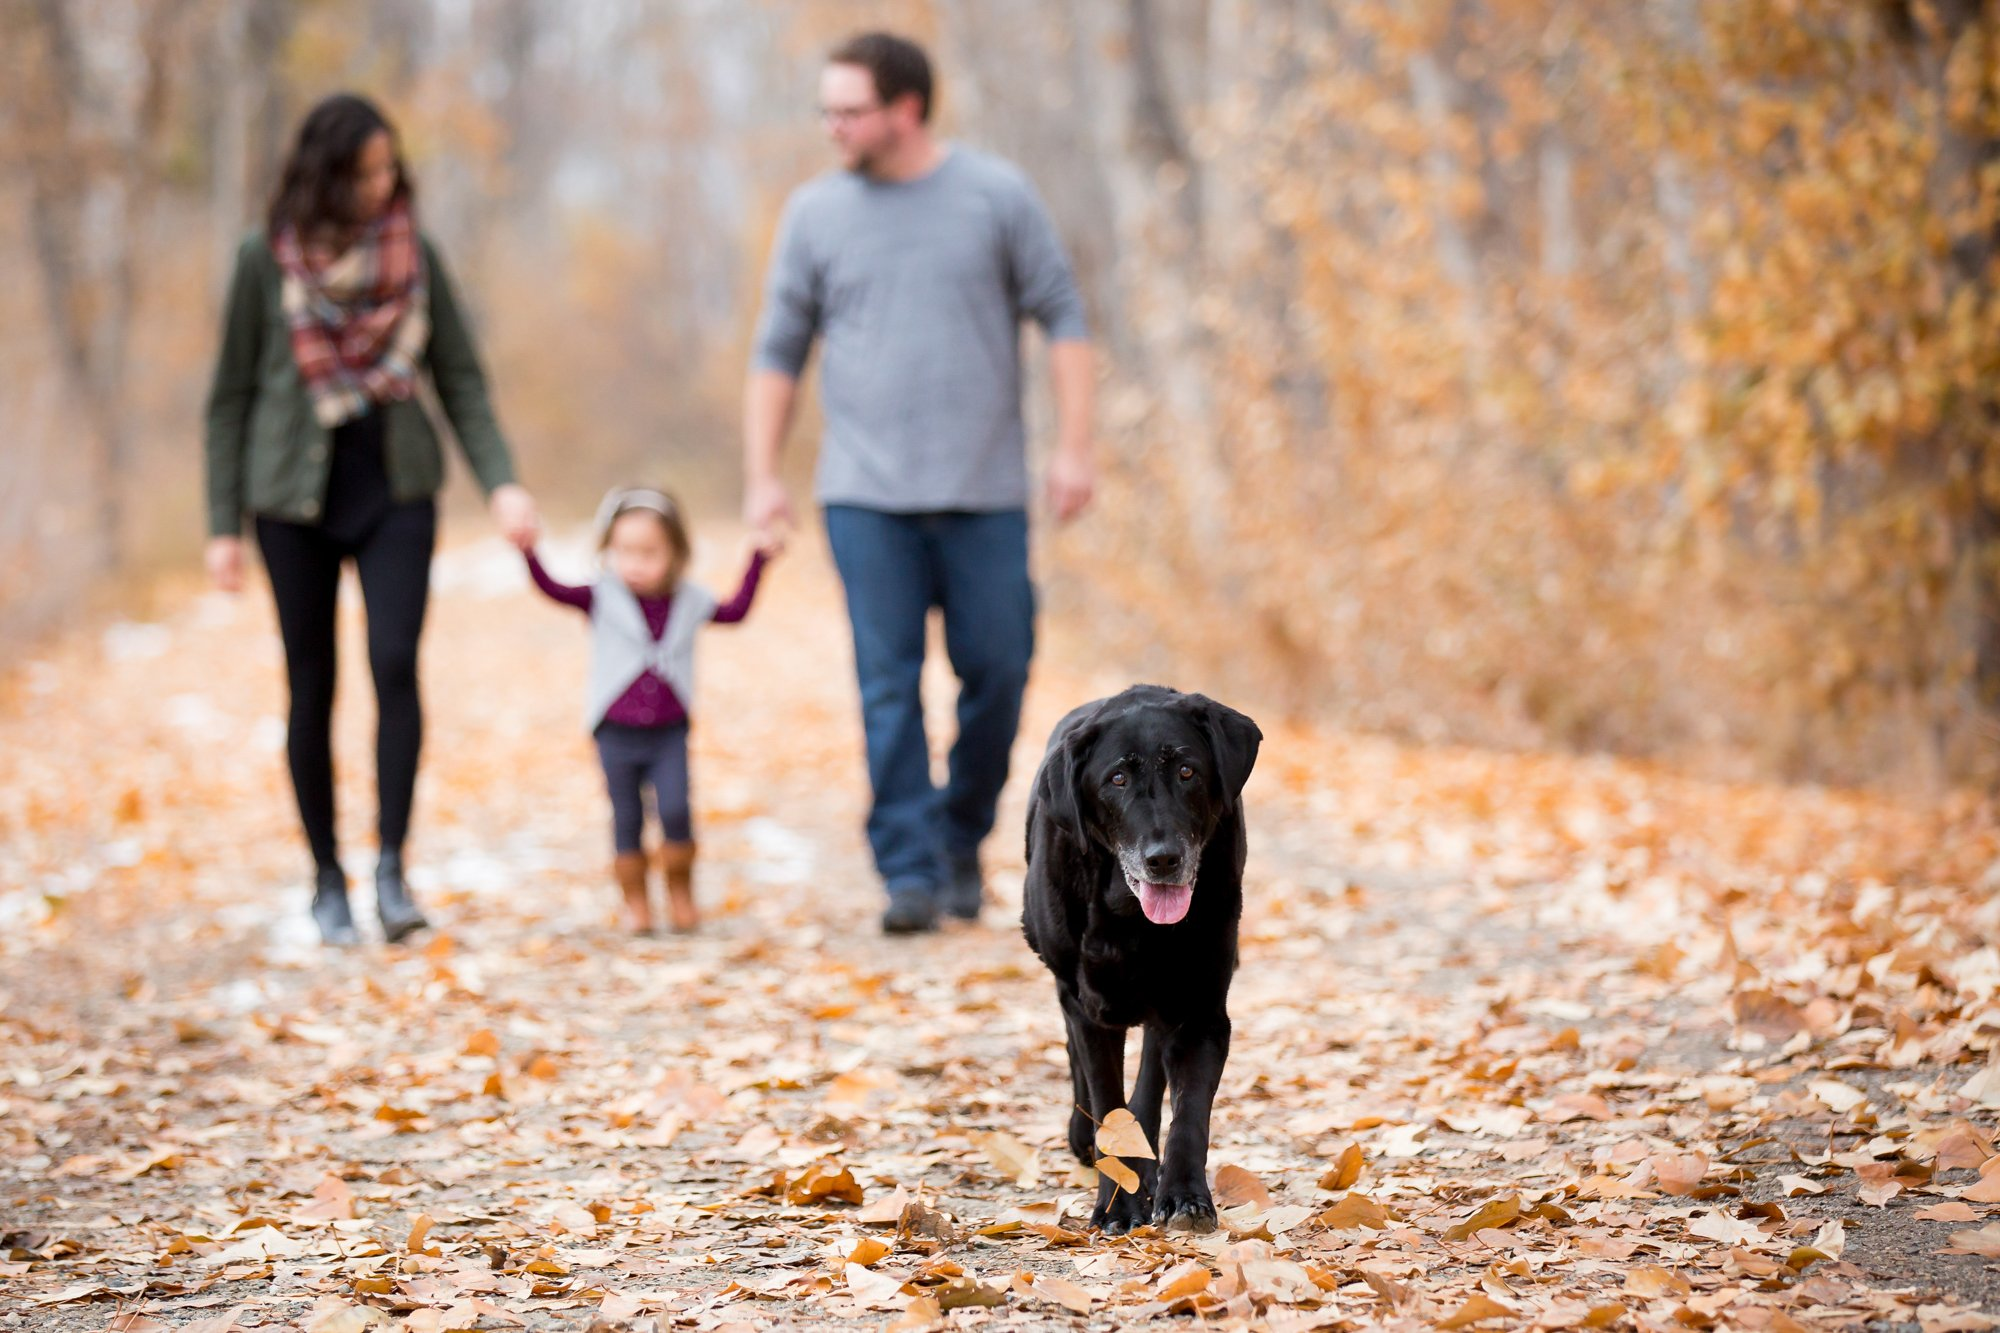 An older dog walking ahead of his family